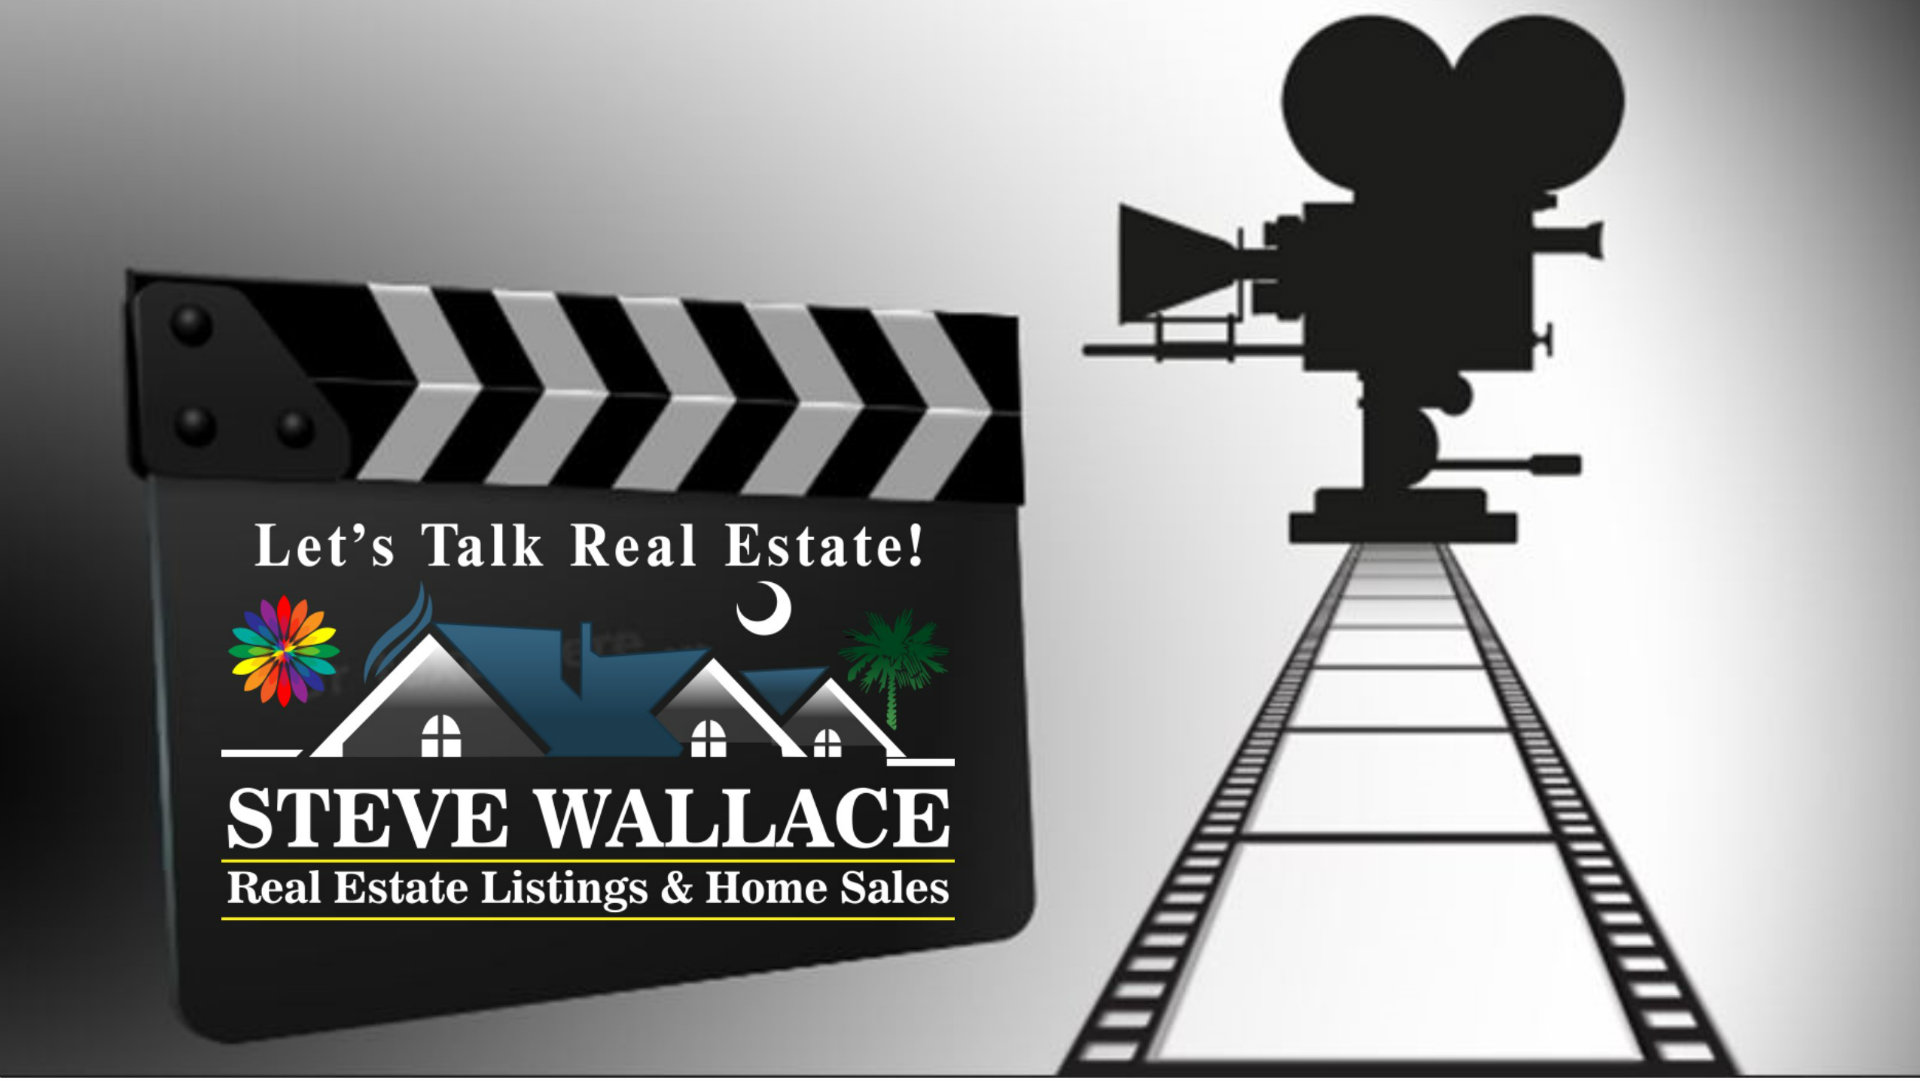 neighborhood, videos, community, Bluffton, SC, Steve Wallace Real Estate